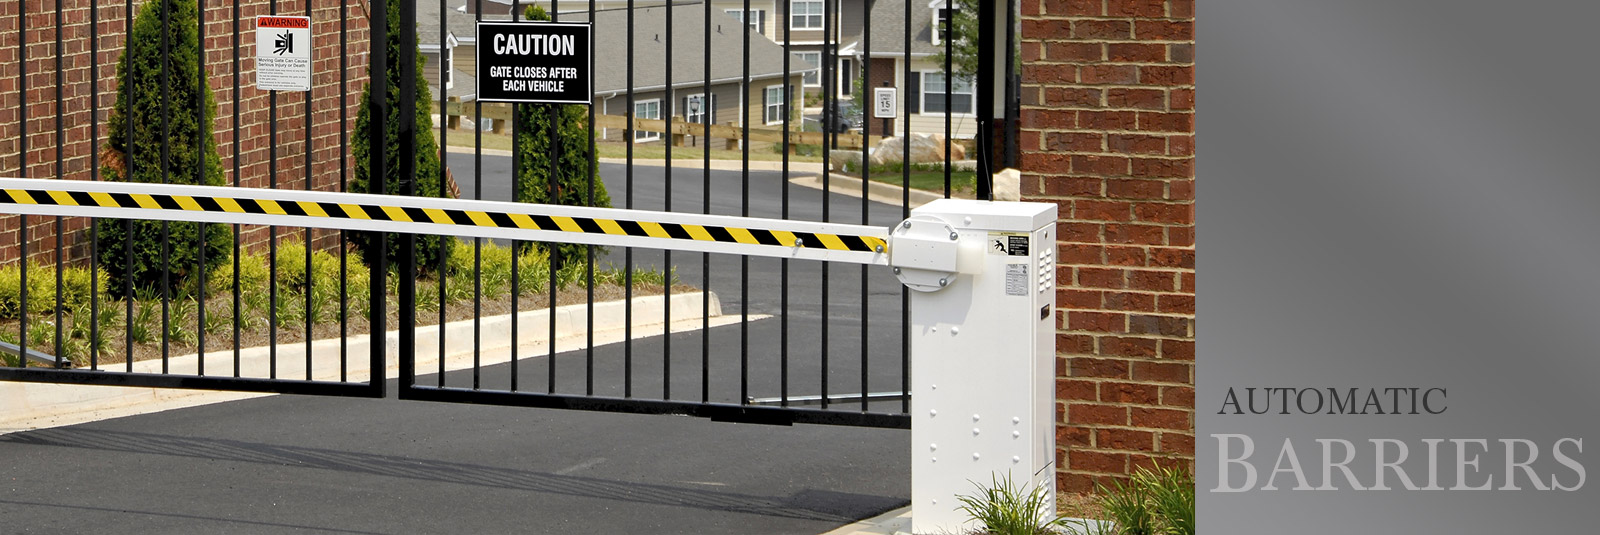 Automatic Barriers Gallery